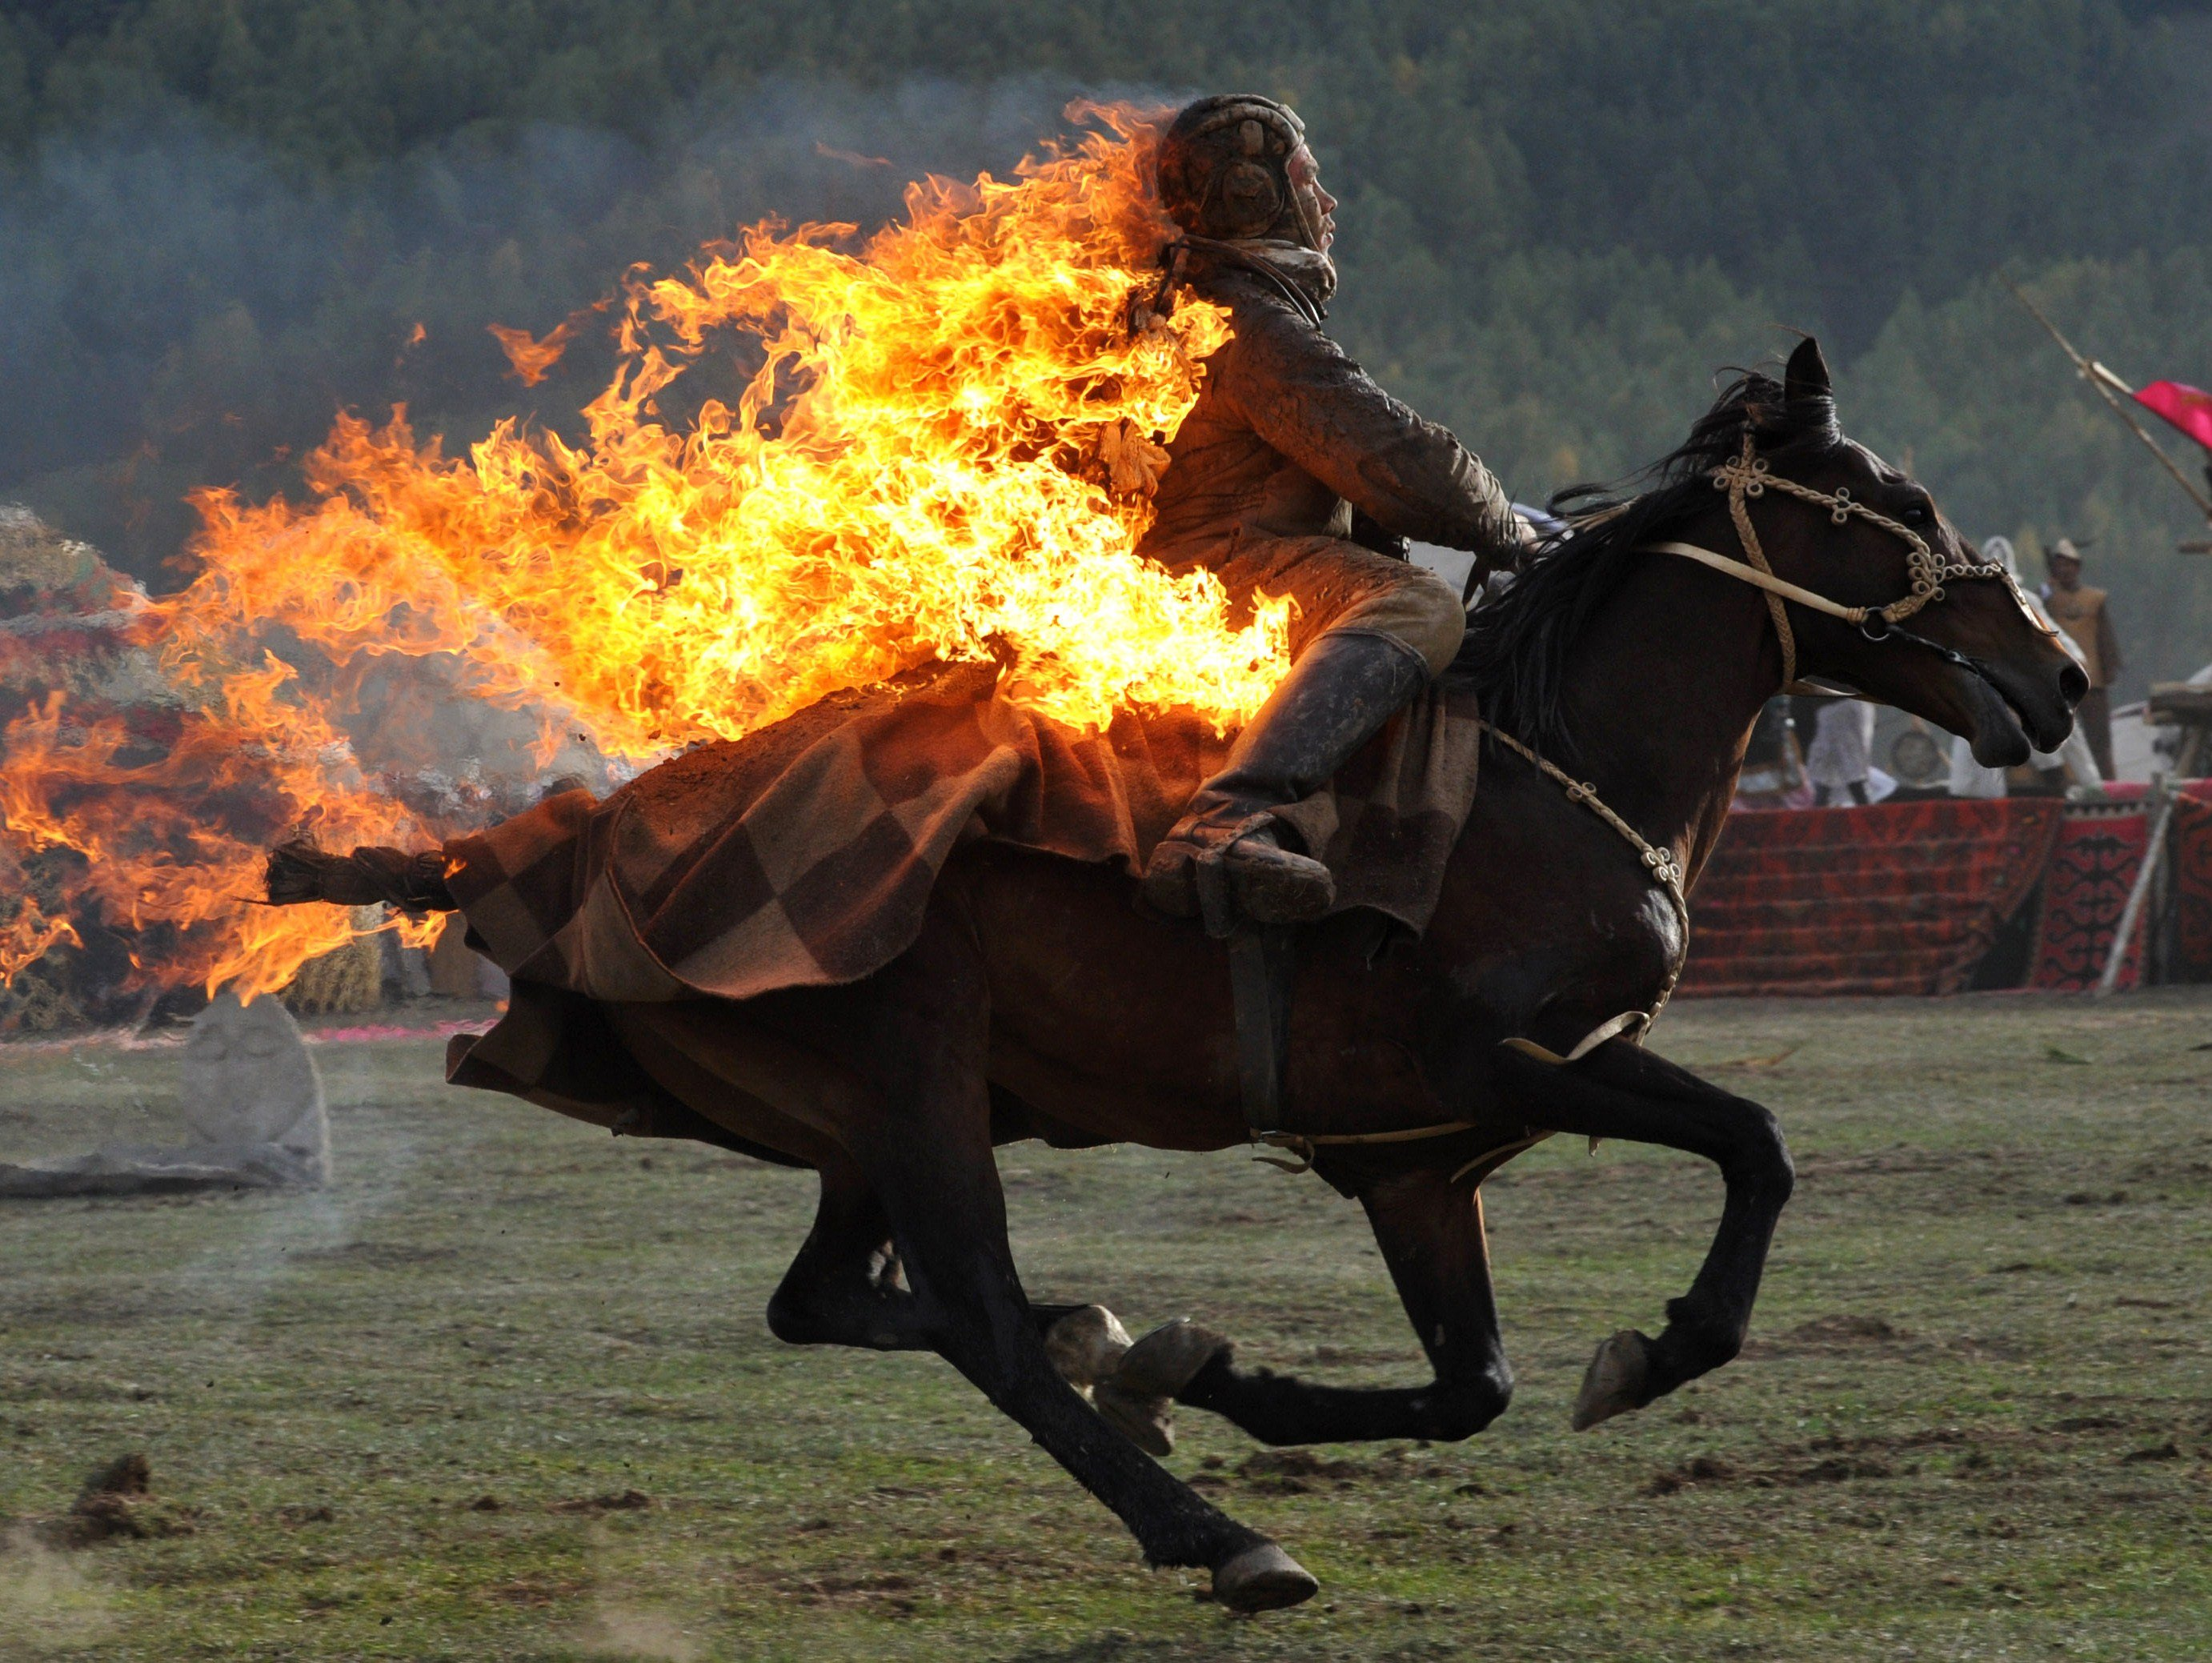 A Kyrgyz stuntman performing during the first World Nomad Games in the Kyrchin gorge, about 300 km from Bishkek, Kyrgyzstan on Sept. 10, 2014.